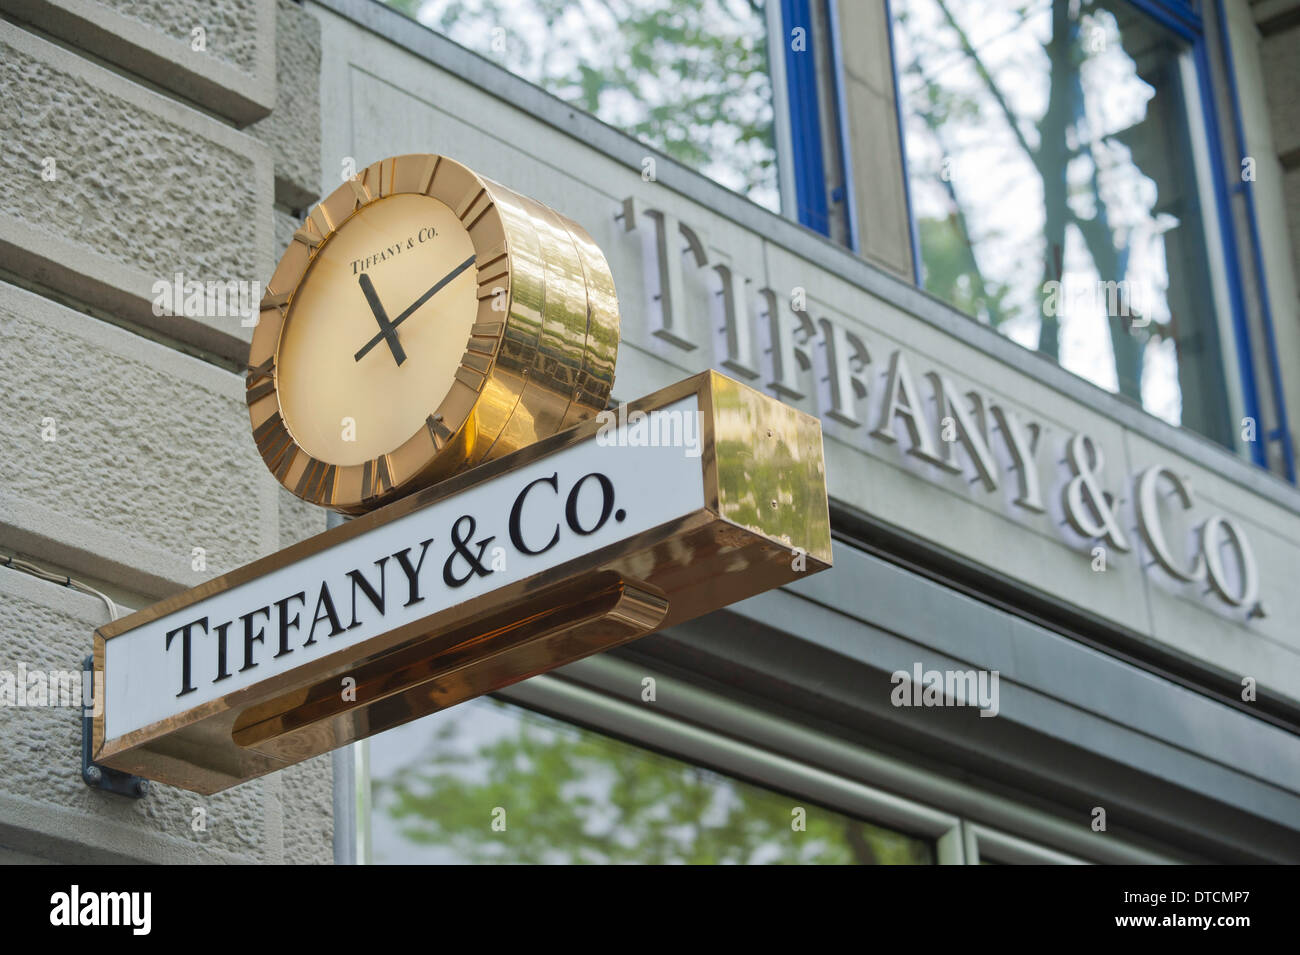 Shop sign of Tiffany on Zurich's Bahnhofstrasse - Stock Image